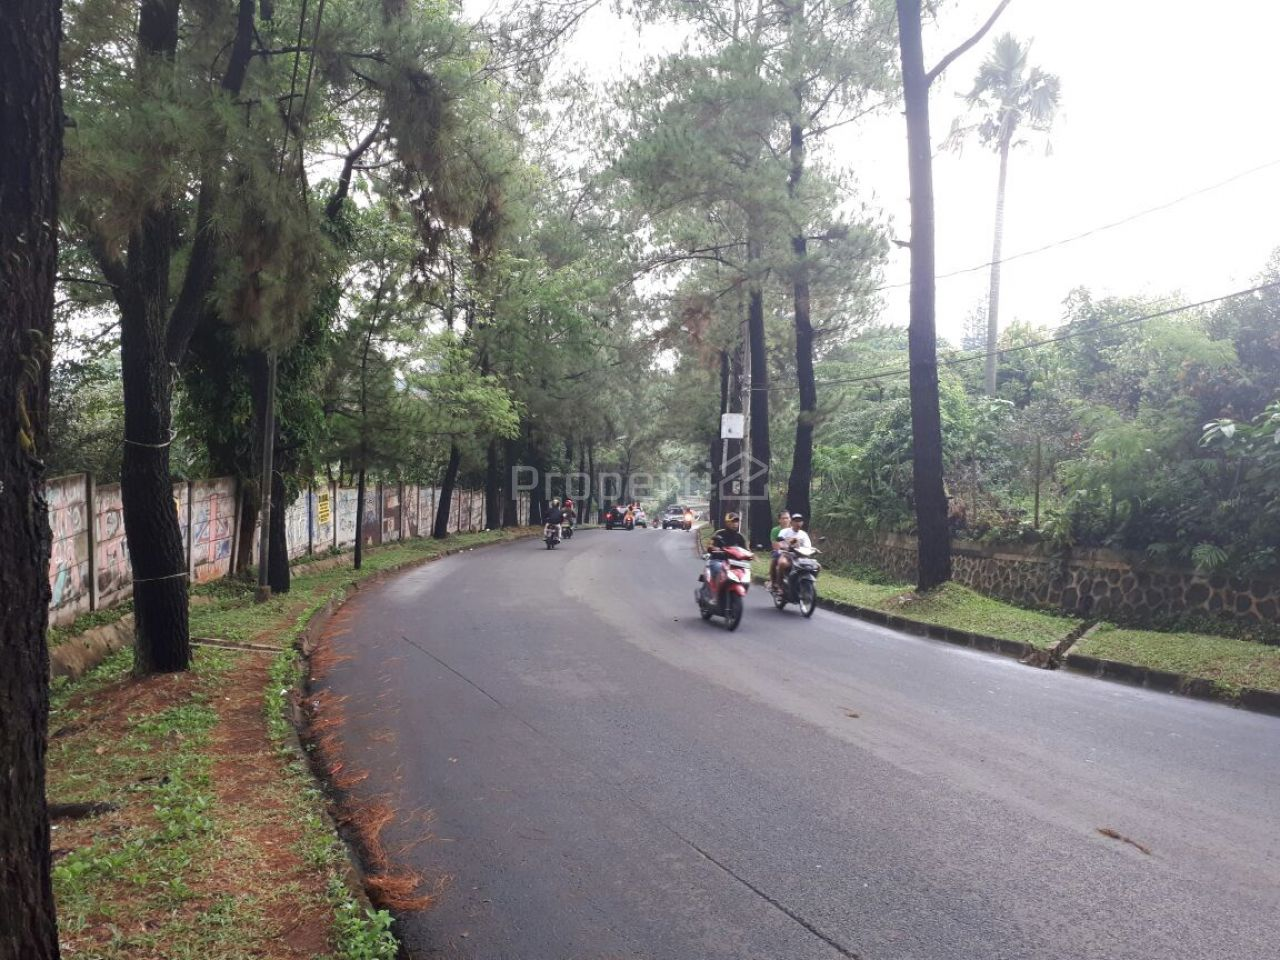 Land for Housing and Apartment Allocation in Cinere, DKI Jakarta